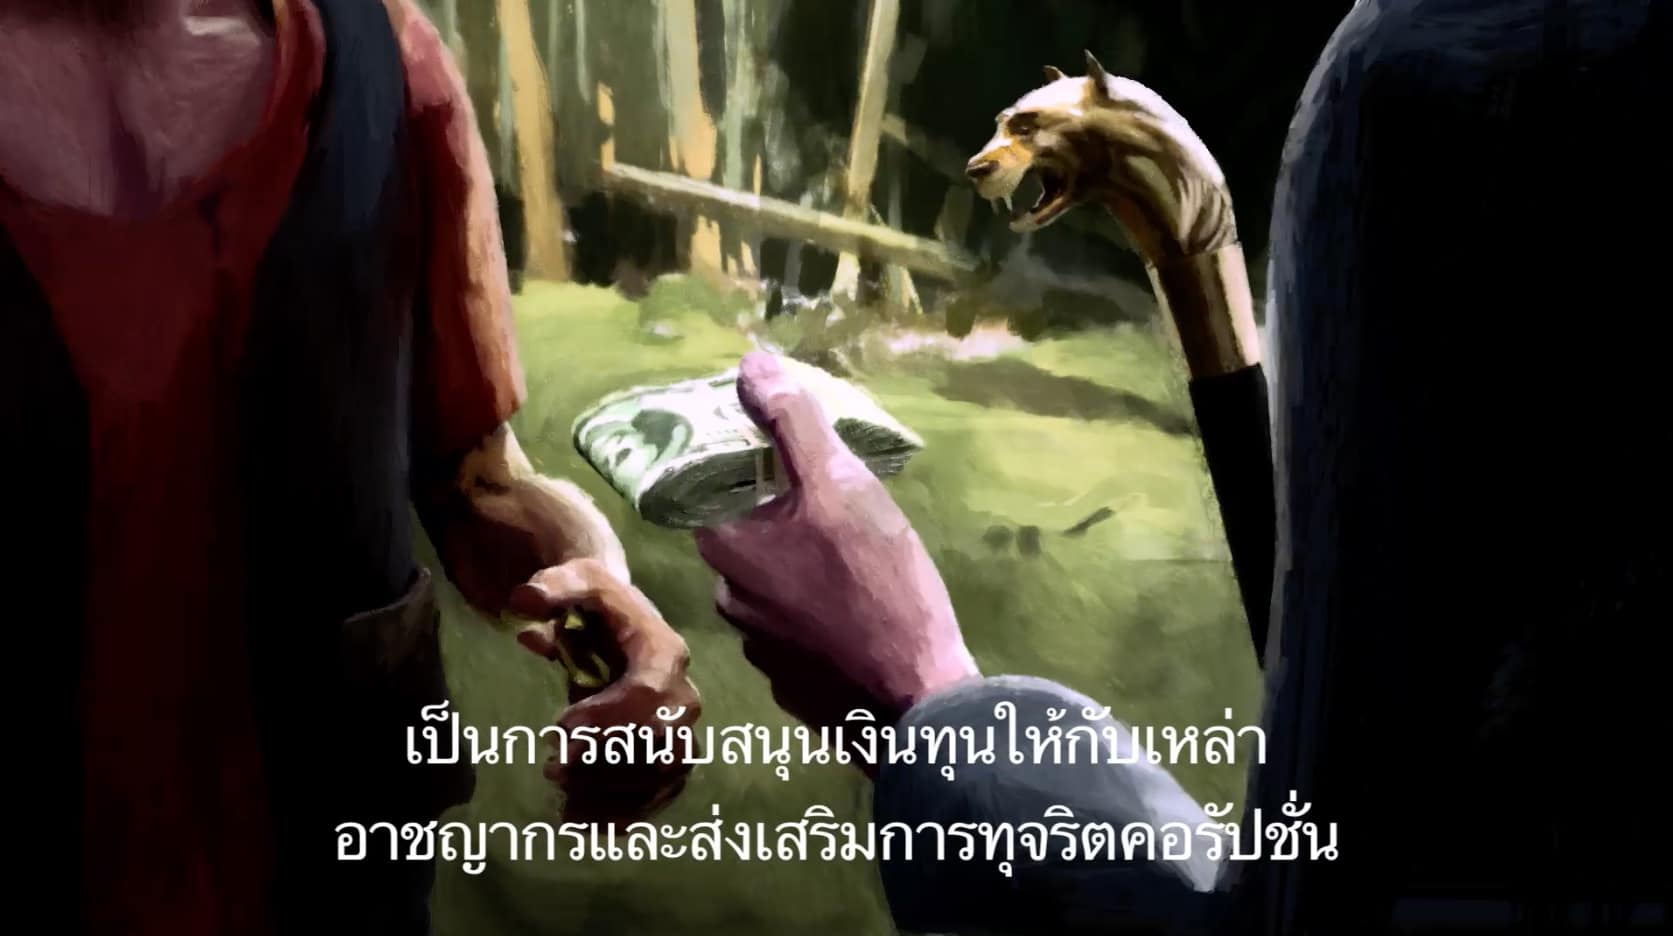 Thai Subtitling United Nations